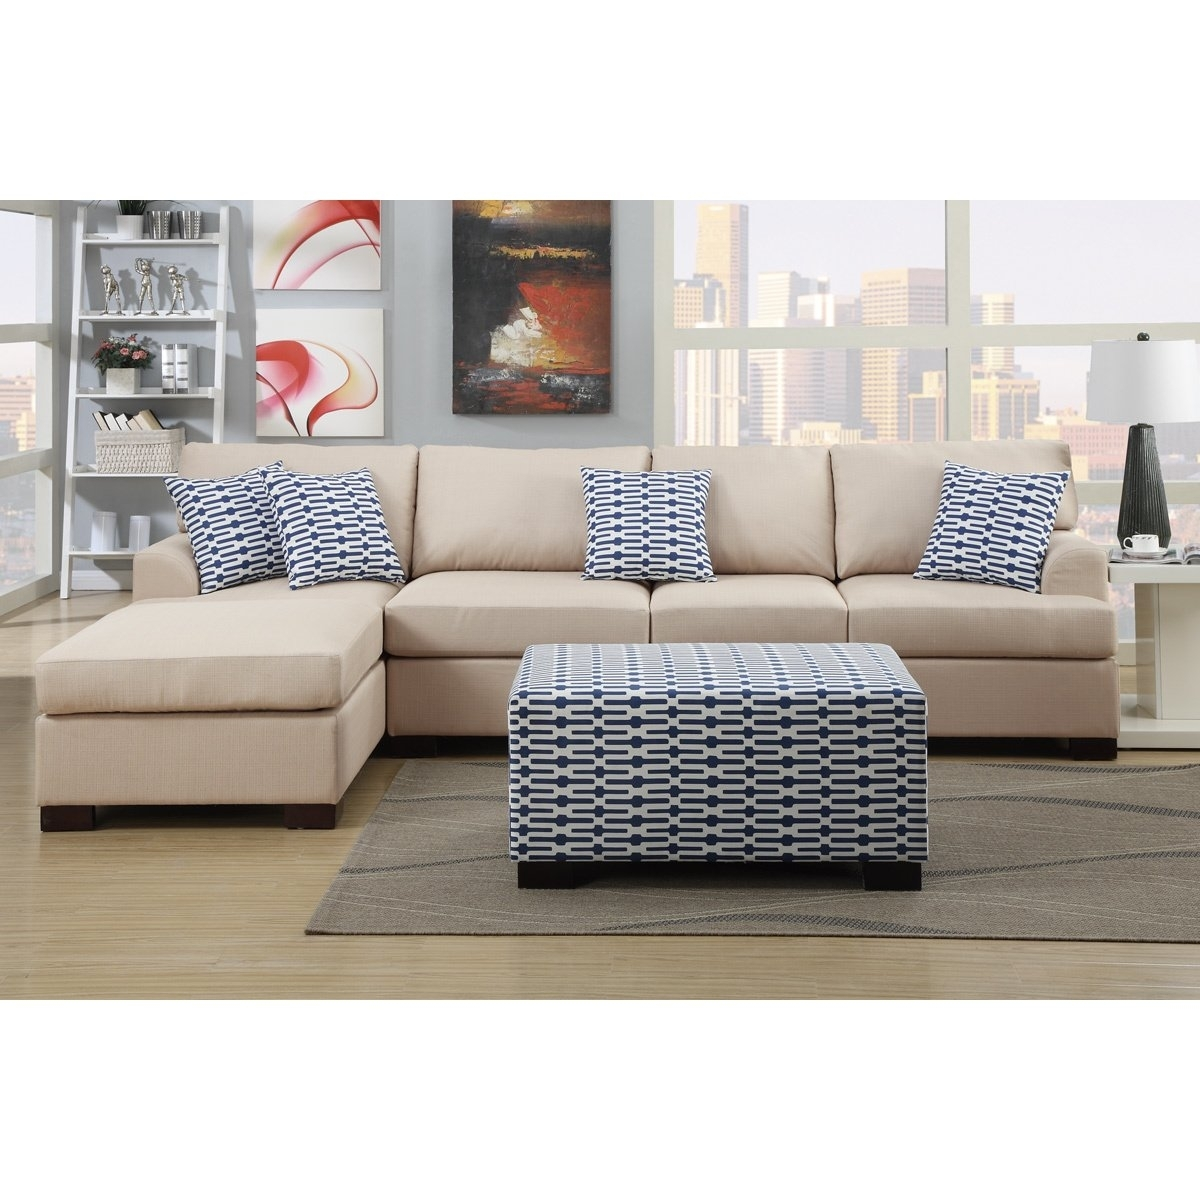 Shop Moss Large 2 Piece Blended Linen Sectional Sofa With Matching With Regard To Adeline 3 Piece Sectionals (View 17 of 25)